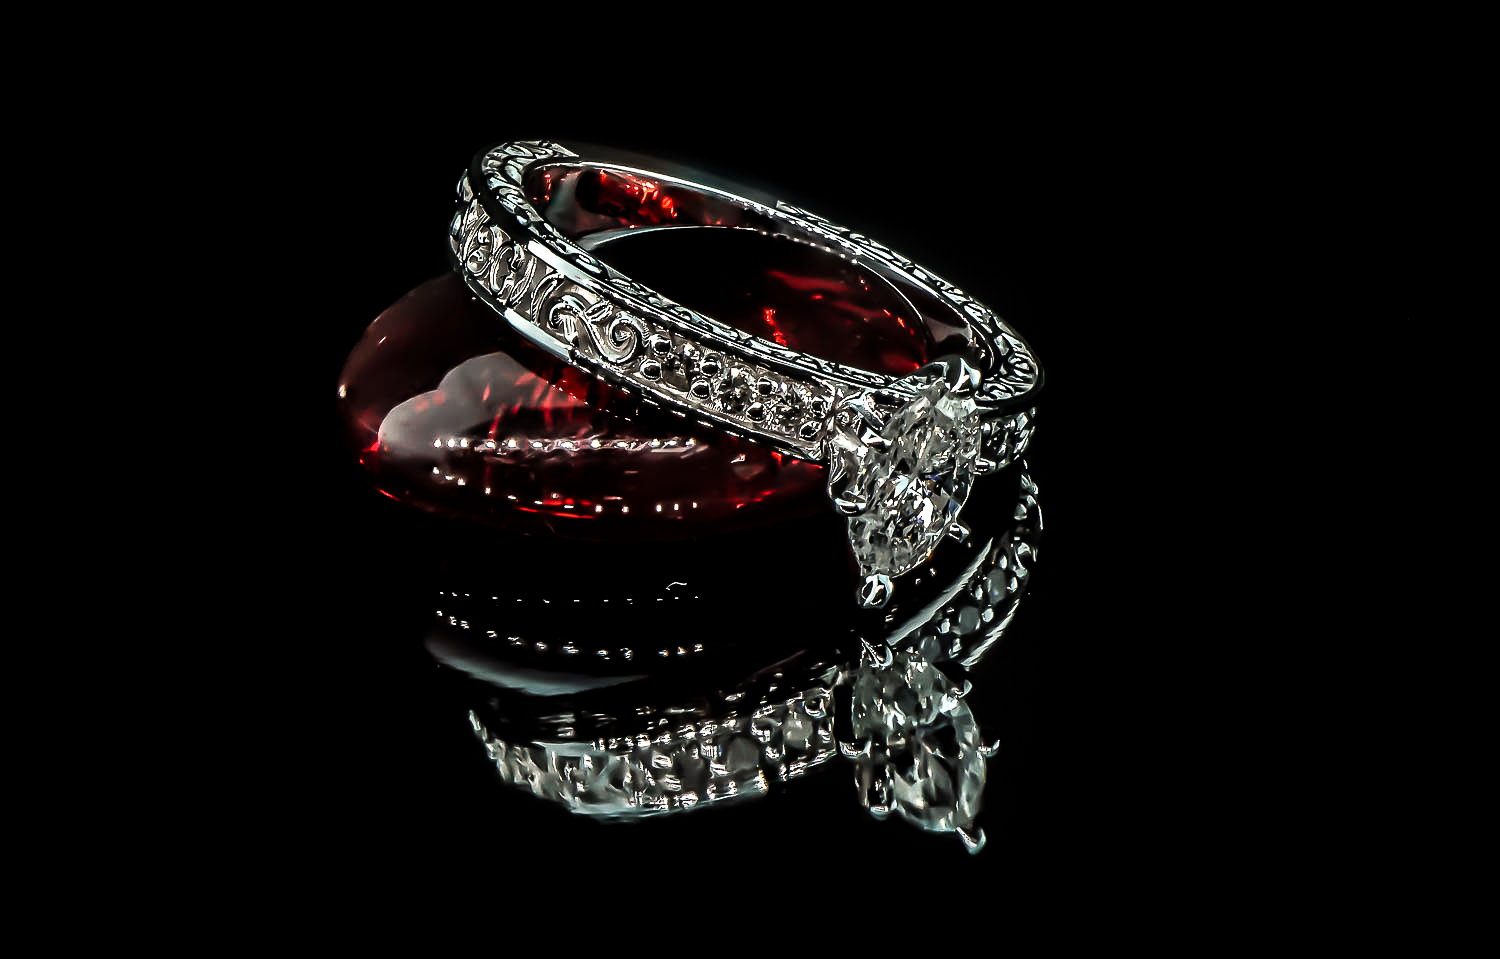 final black and red mandy ring photos (1 of 1).JPG